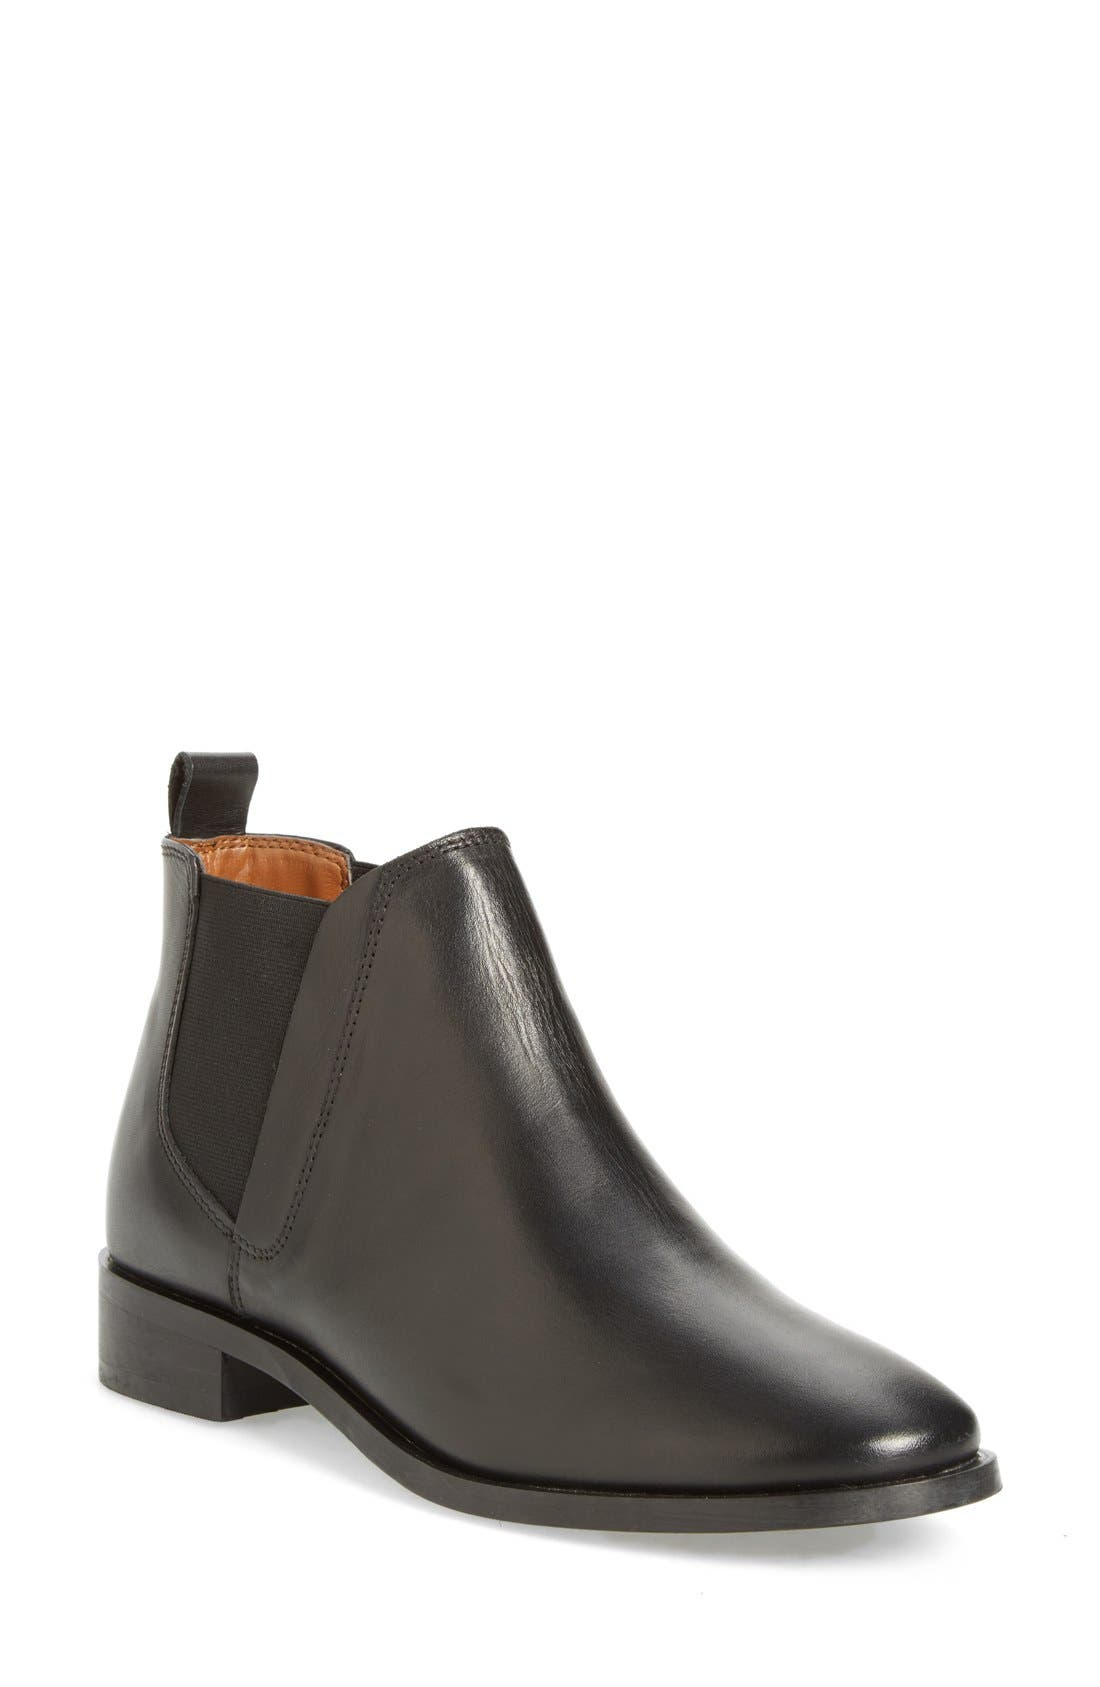 Alternate Image 1 Selected - Topshop 'Kaiser' Chelsea Boot (Women)